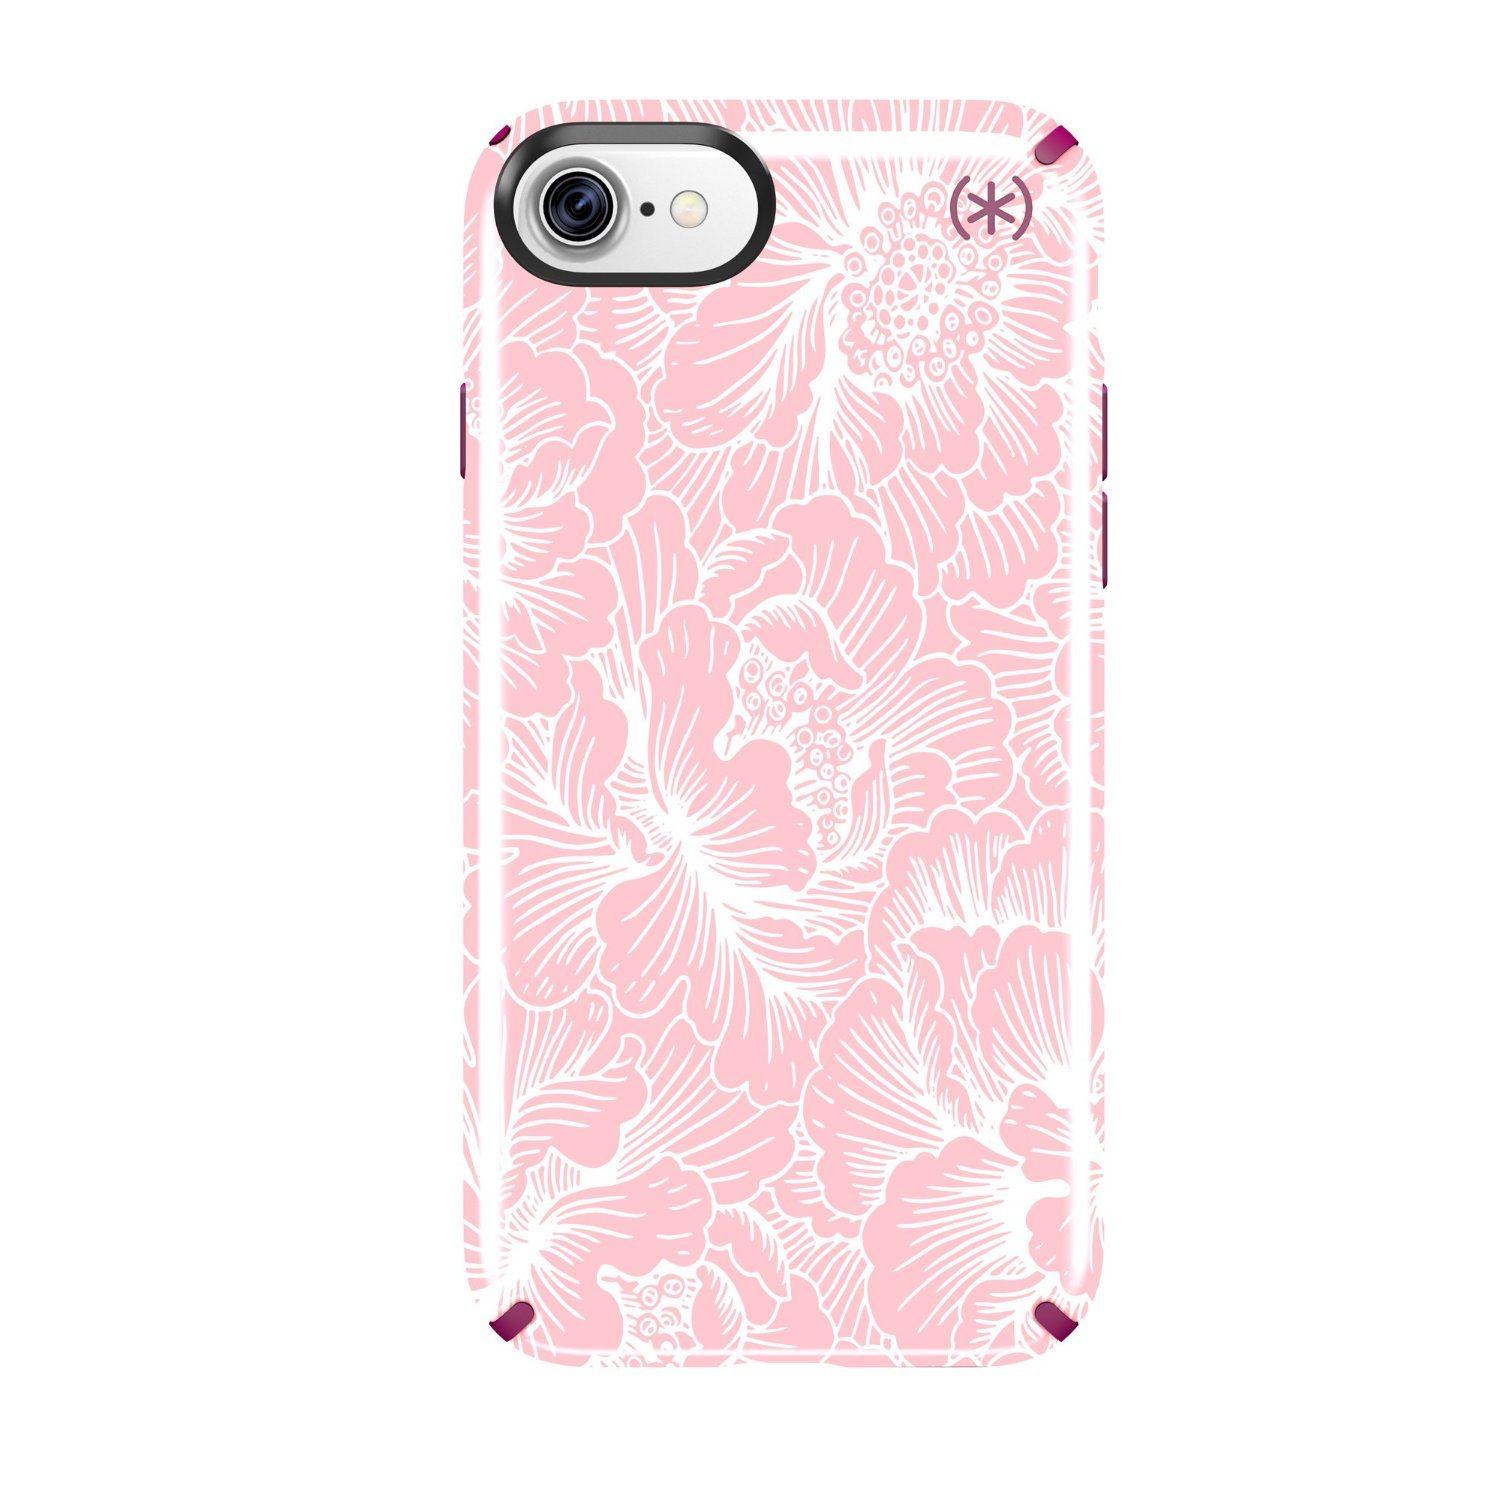 iPhone 7 Nebula Floral Pattern Cell Phone Case Hard Case